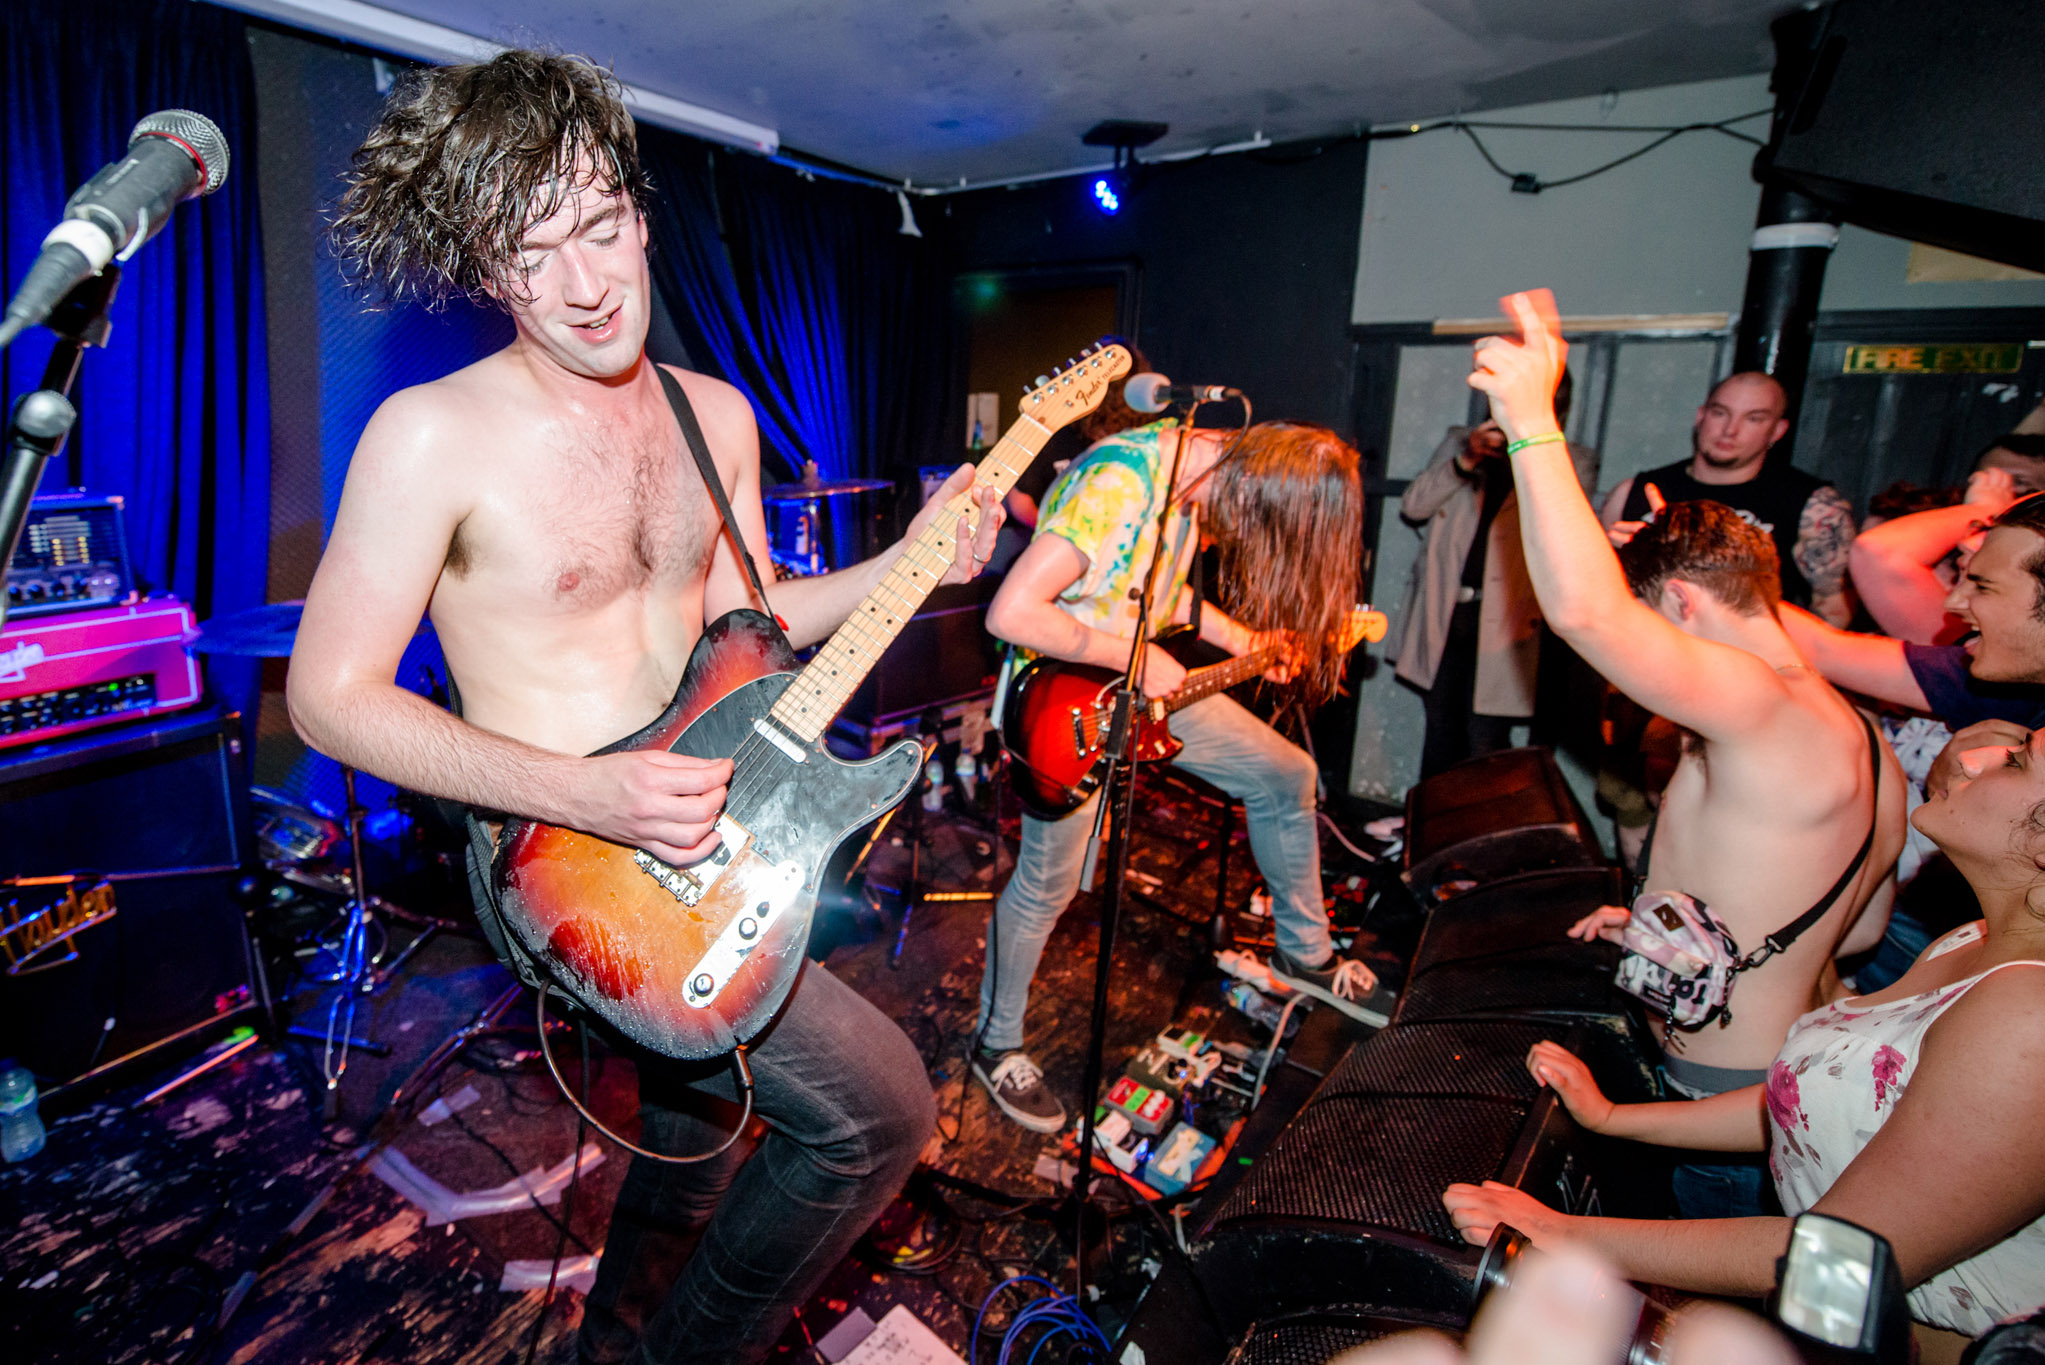 Pulled Apart By Horses show off new material at tiny Camden gig